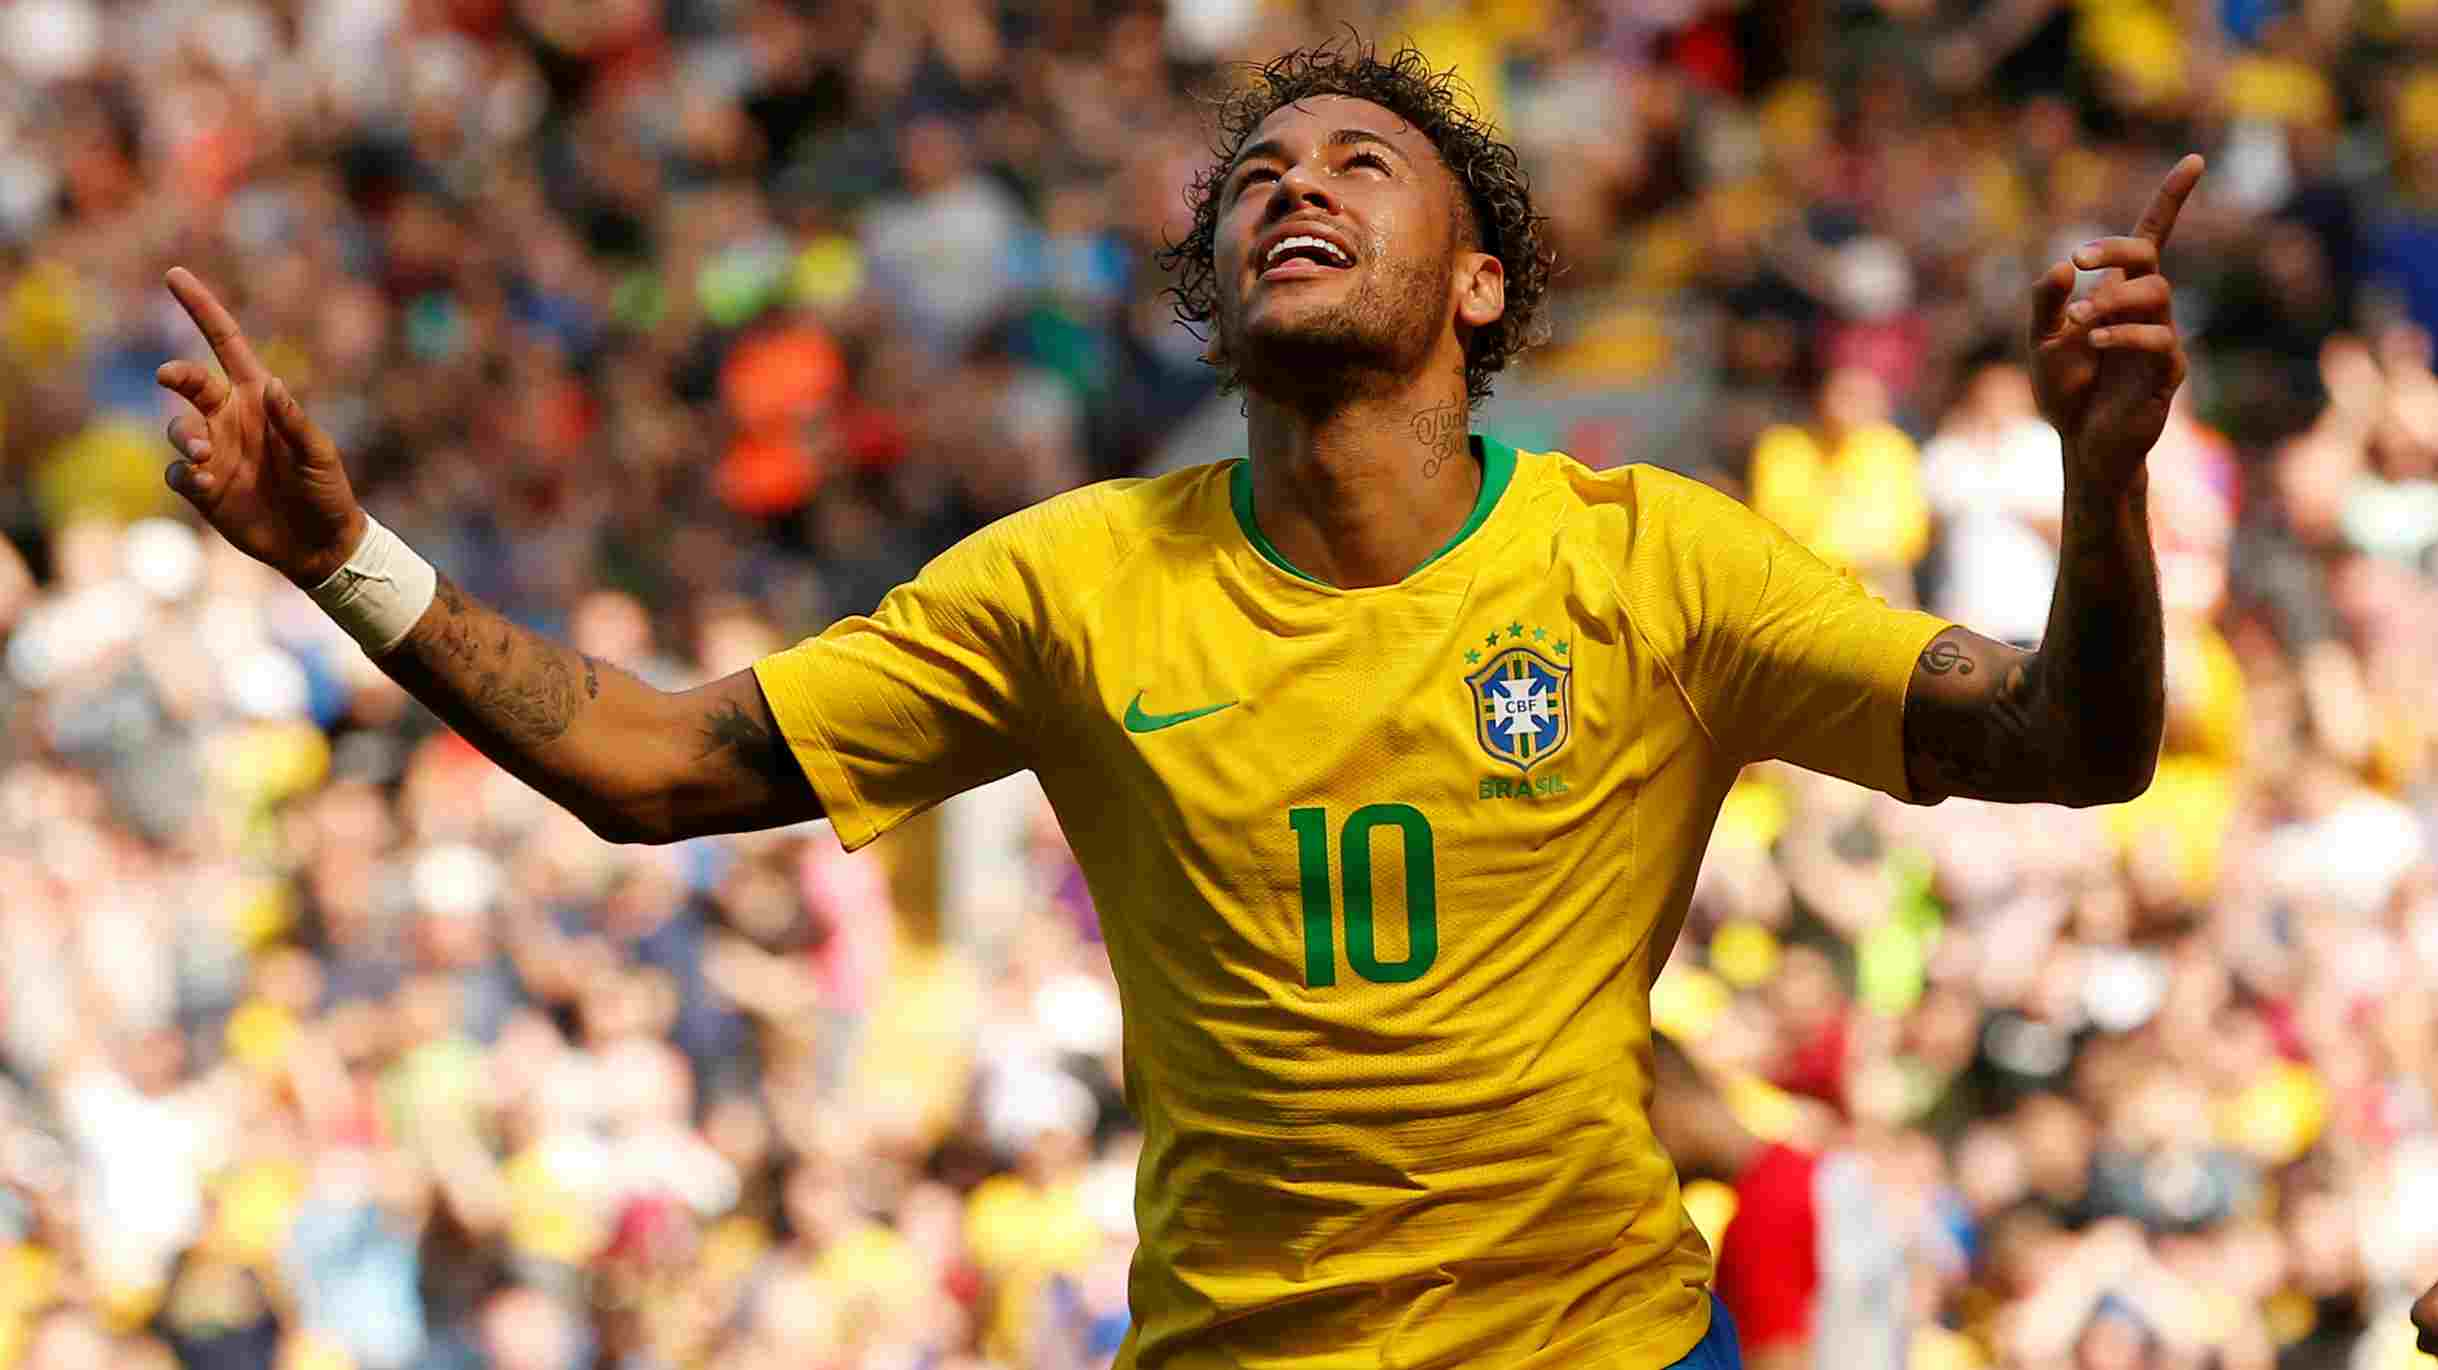 Neymar Jr. | The captain and without doubt the most talented player in the current Brazilian squad, Neymay has had a pretty decent World Cup so far. He ended the group stages with one goal and an assist to his name but also had 17 fouls committed against him as opponents tried to bully him out of the game. Neymar however isn't one to shy away from a tough fight and will be licking his lips to have a run at the Mexican defence which conceded three goals against Sweden in their last fixture. (Image - Reuters)